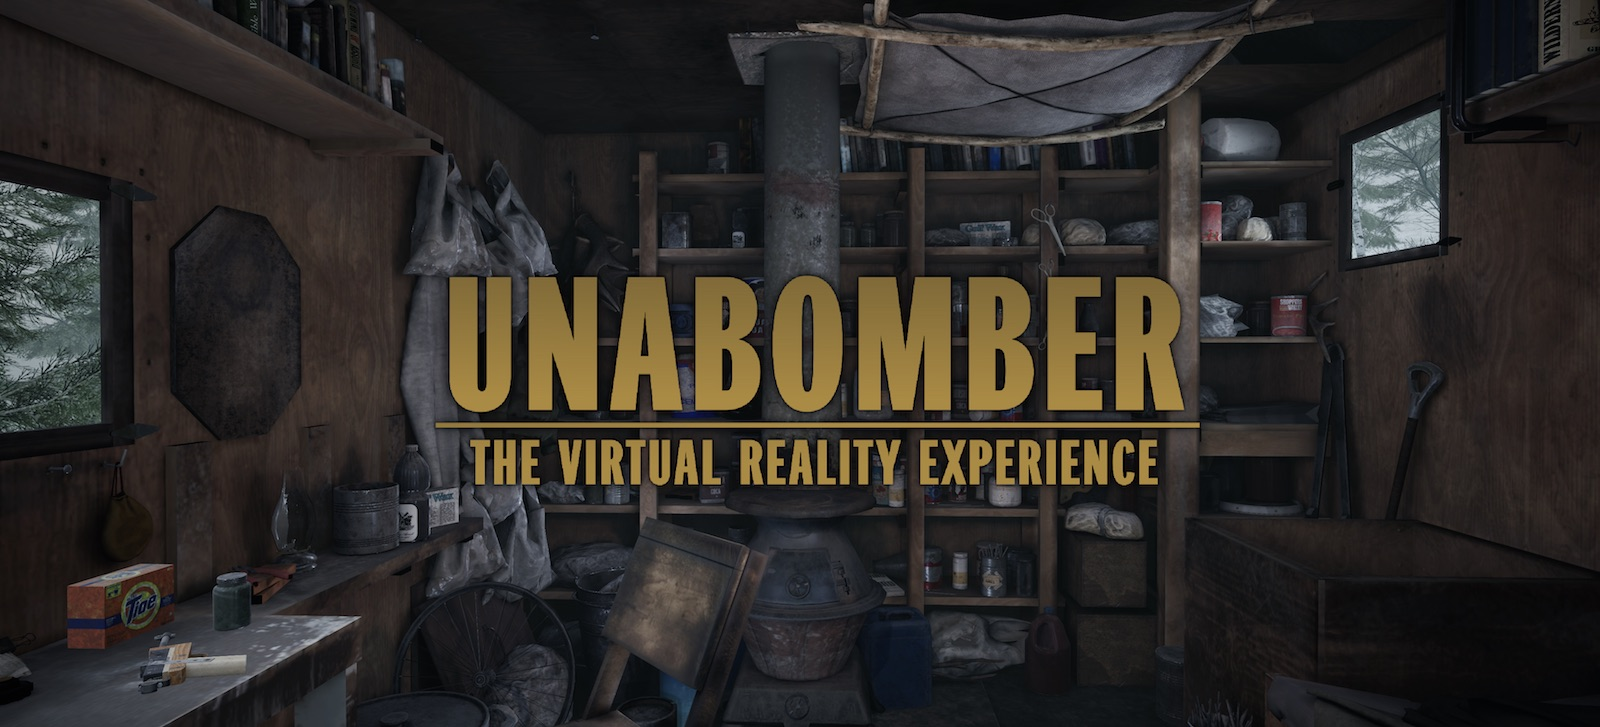 'Unabomber: The Virtual Reality Experience' Will Task You To Solve A Murder Mystery As An FBI Agent